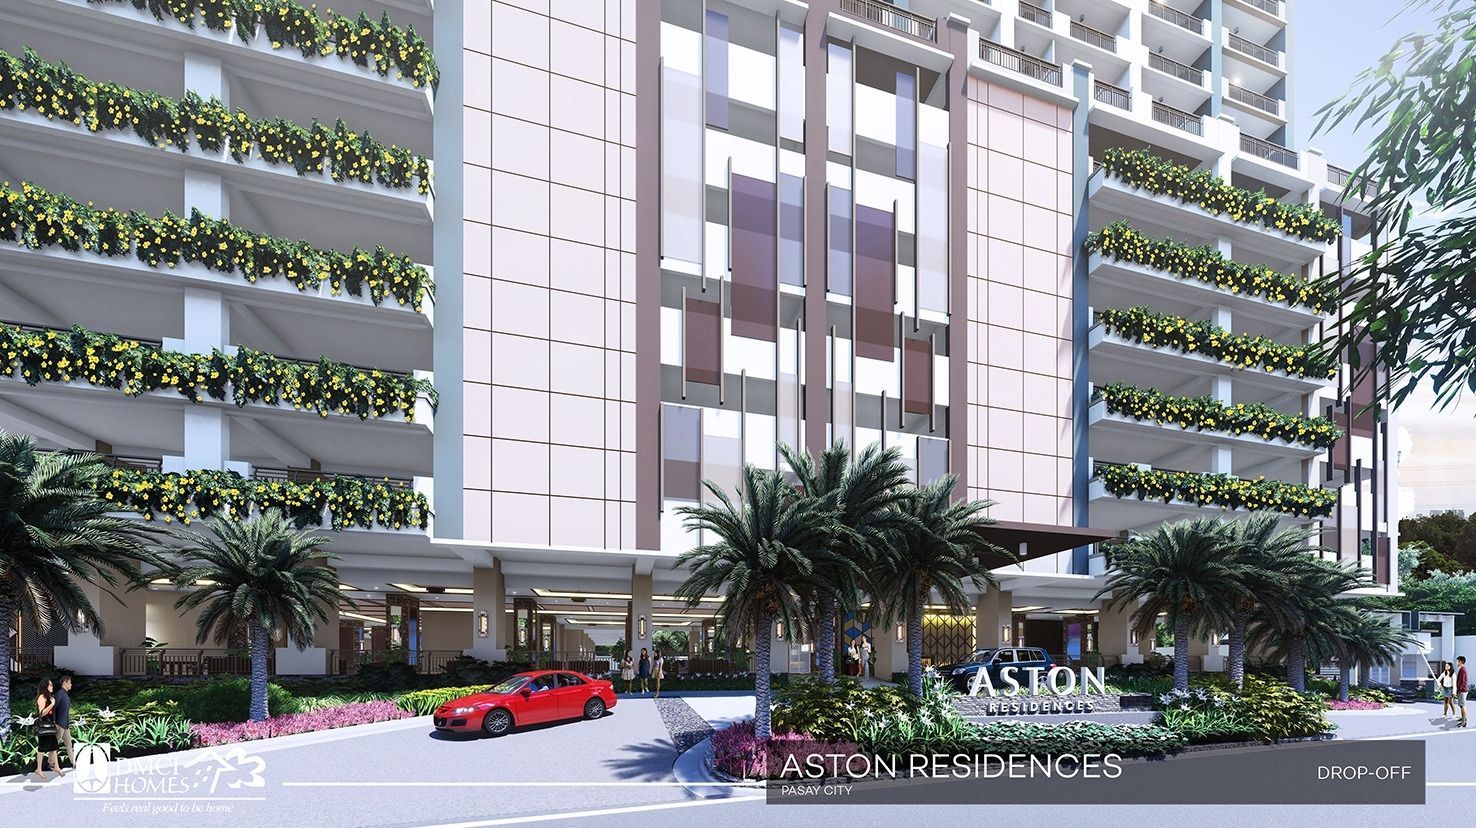 aston-residences-amenity4